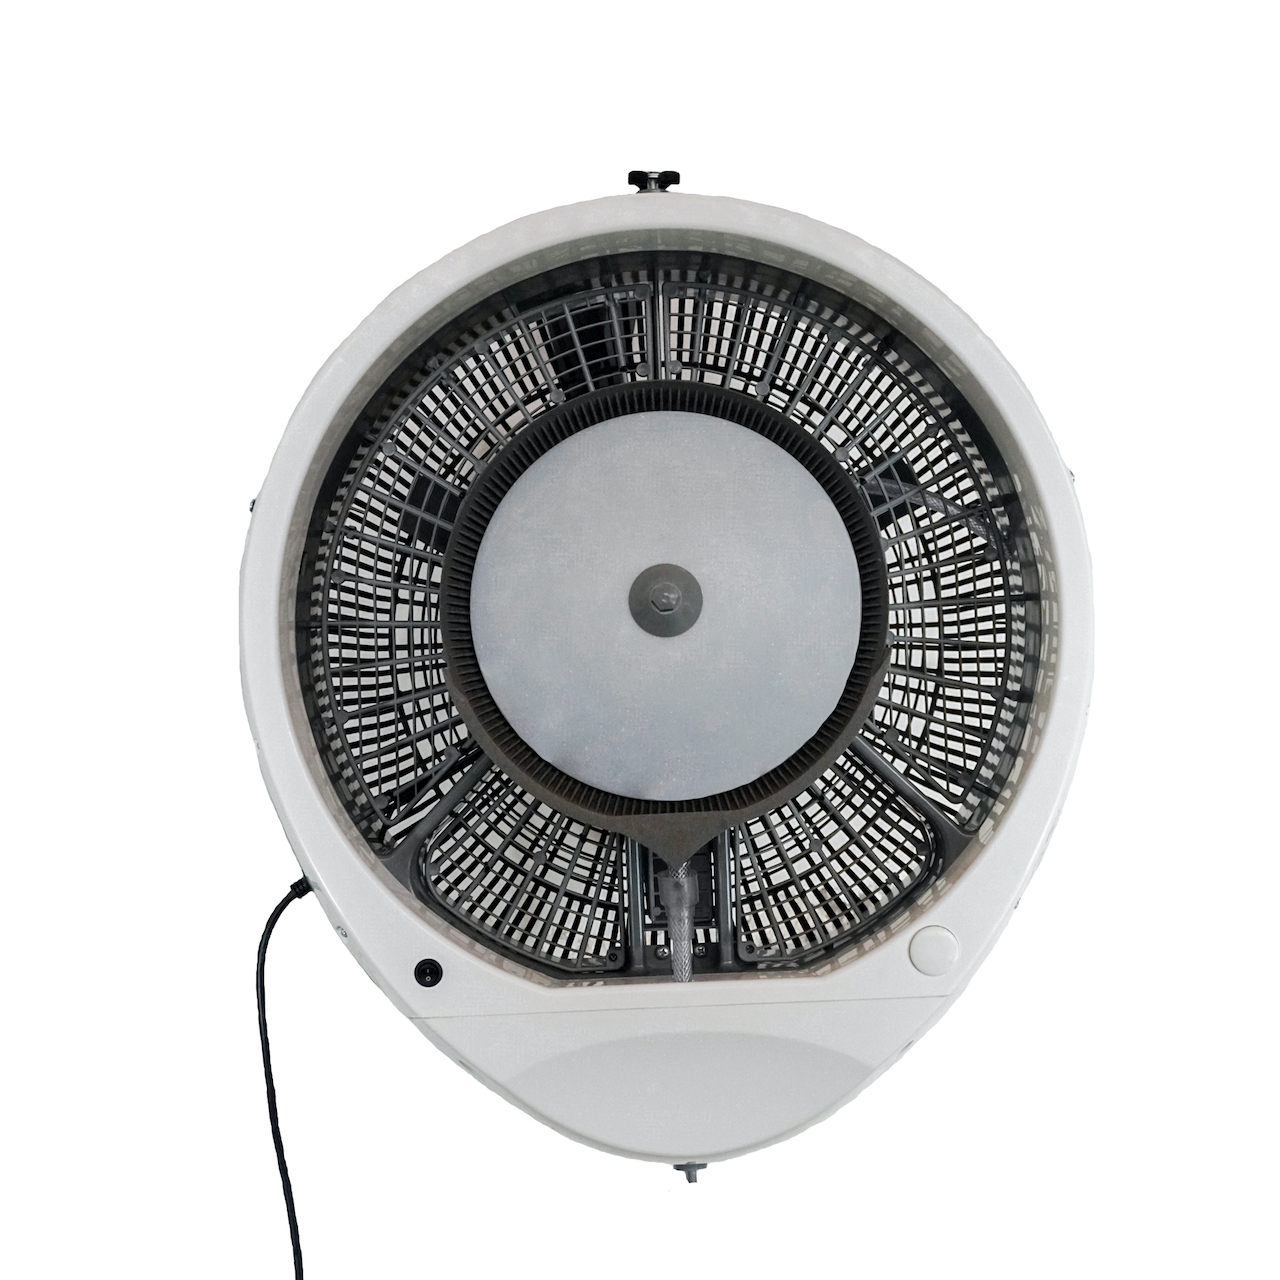 EcoJet Cyclone Wall Mount Misting Fan in White